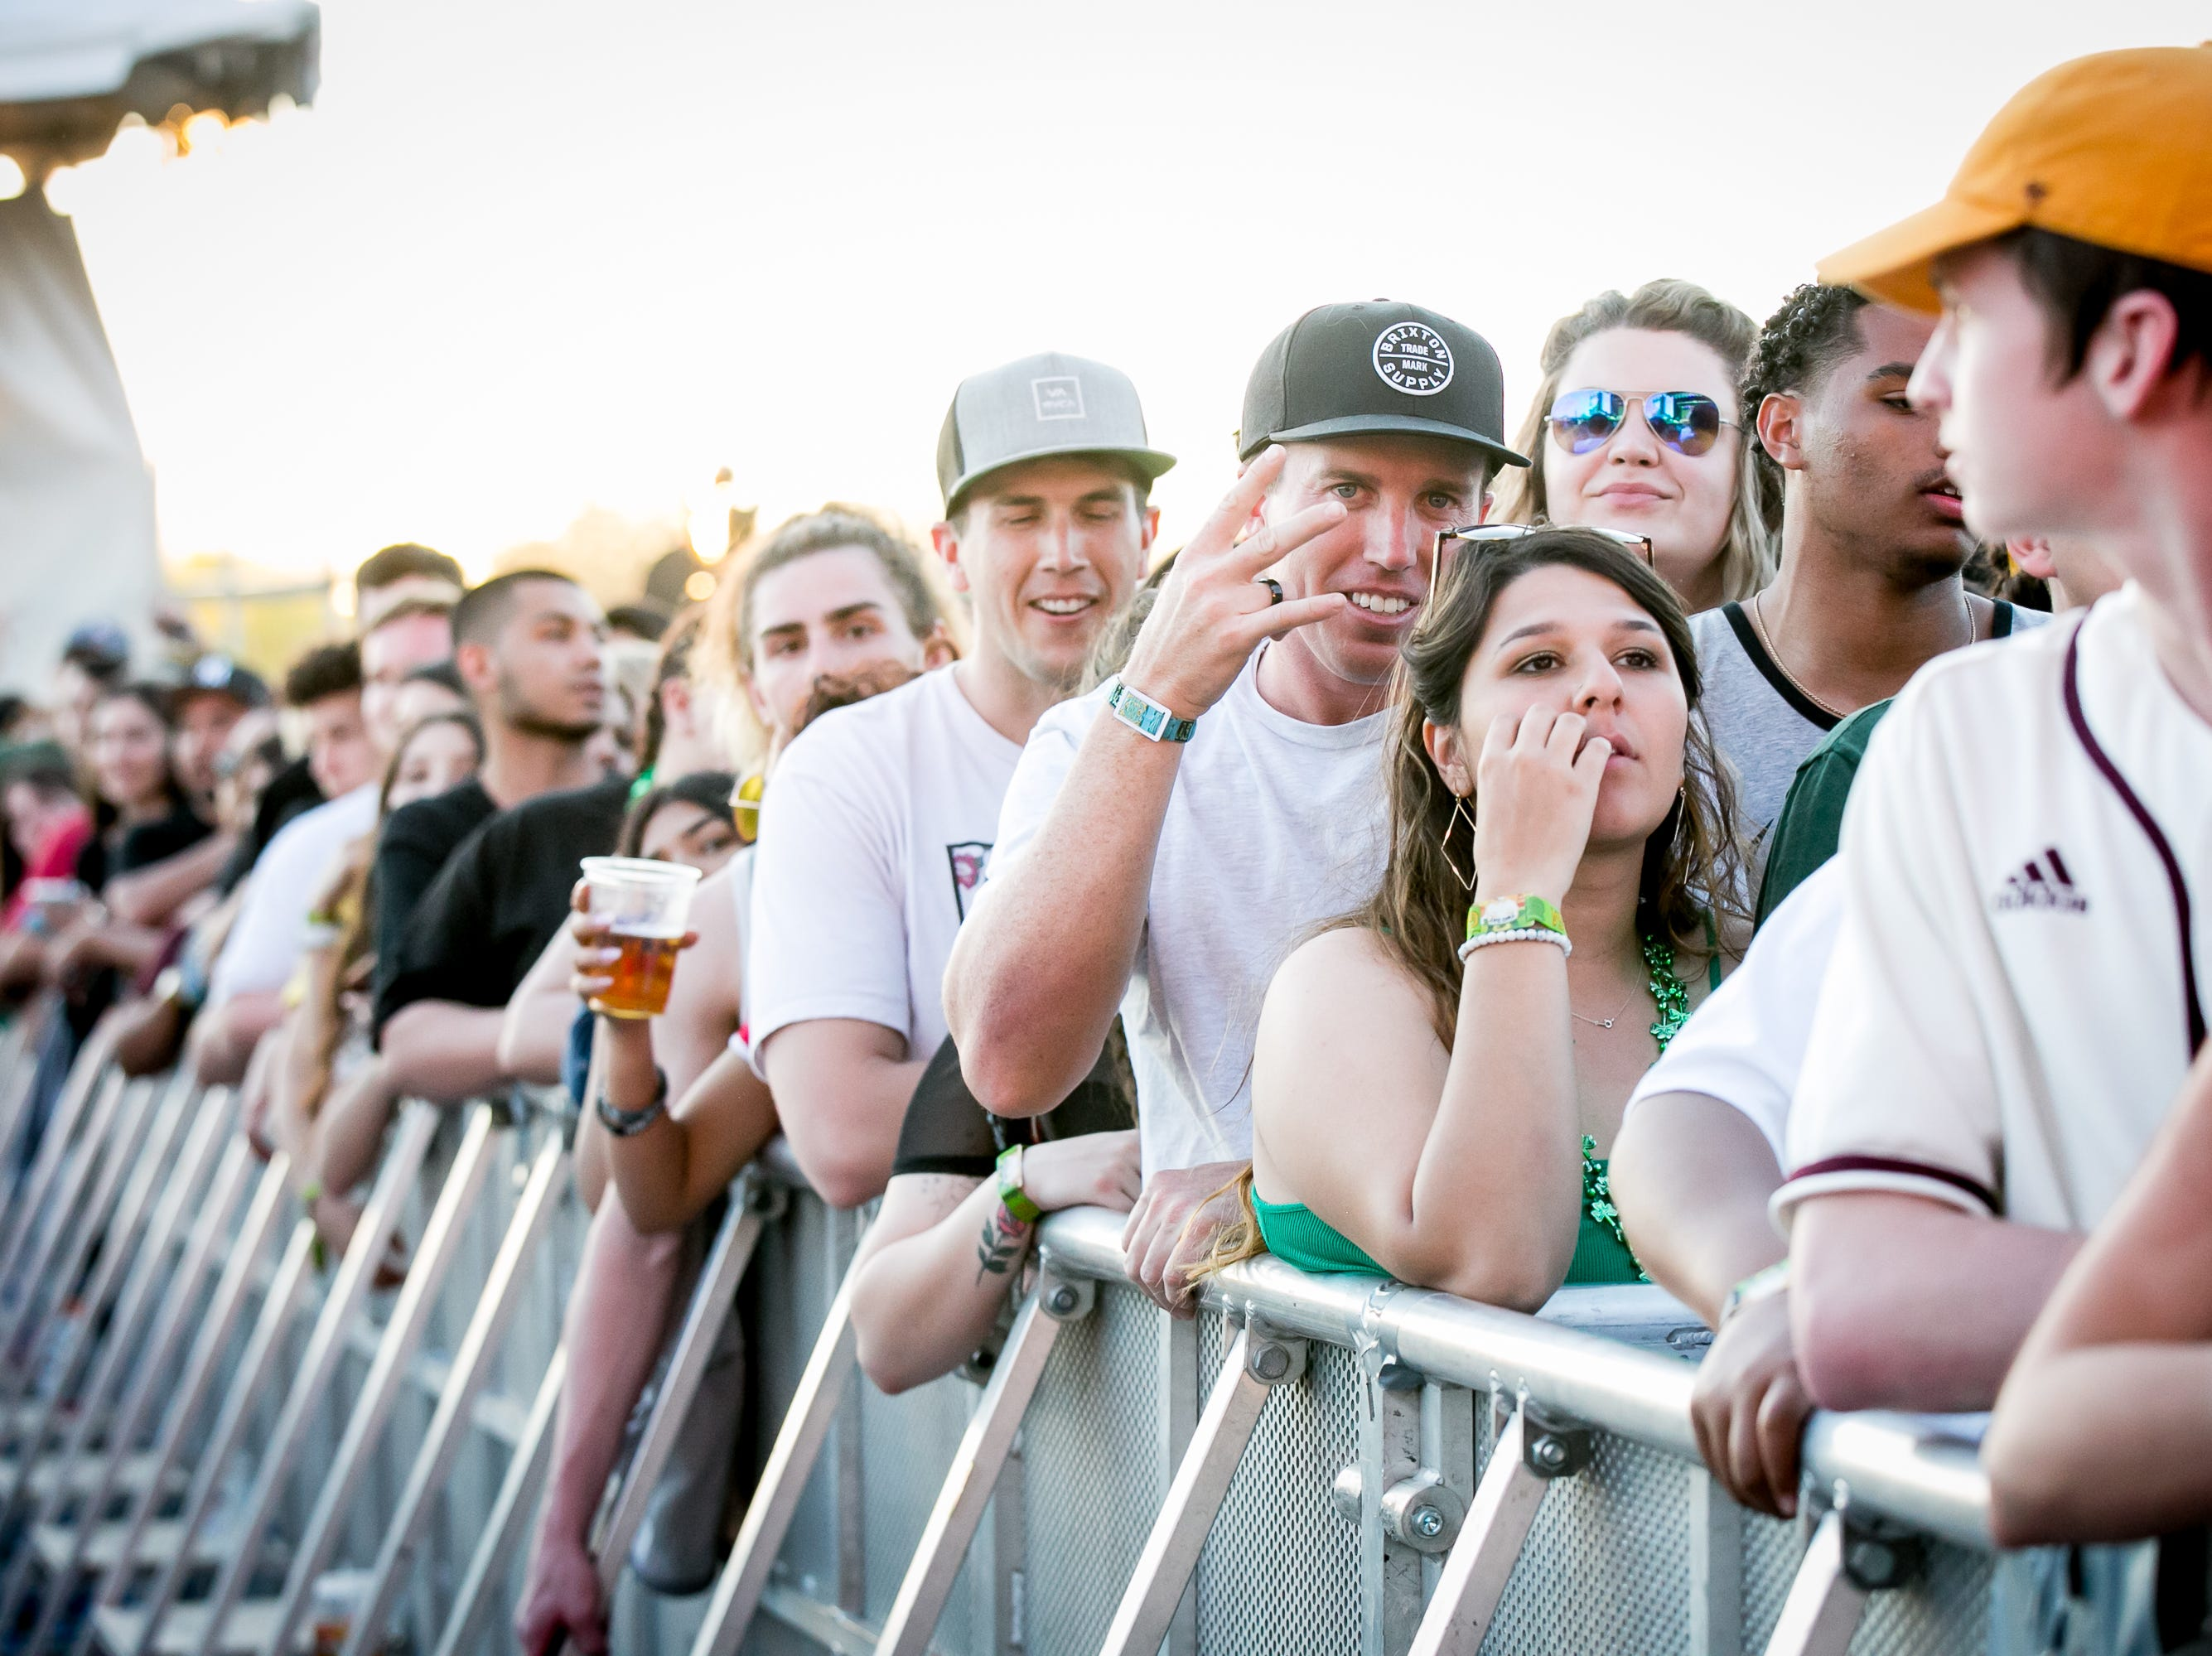 The audience eagerly awaited the start of Lil Pump's set at Pot of Gold Music Festival on Sunday, March 17, 2019.